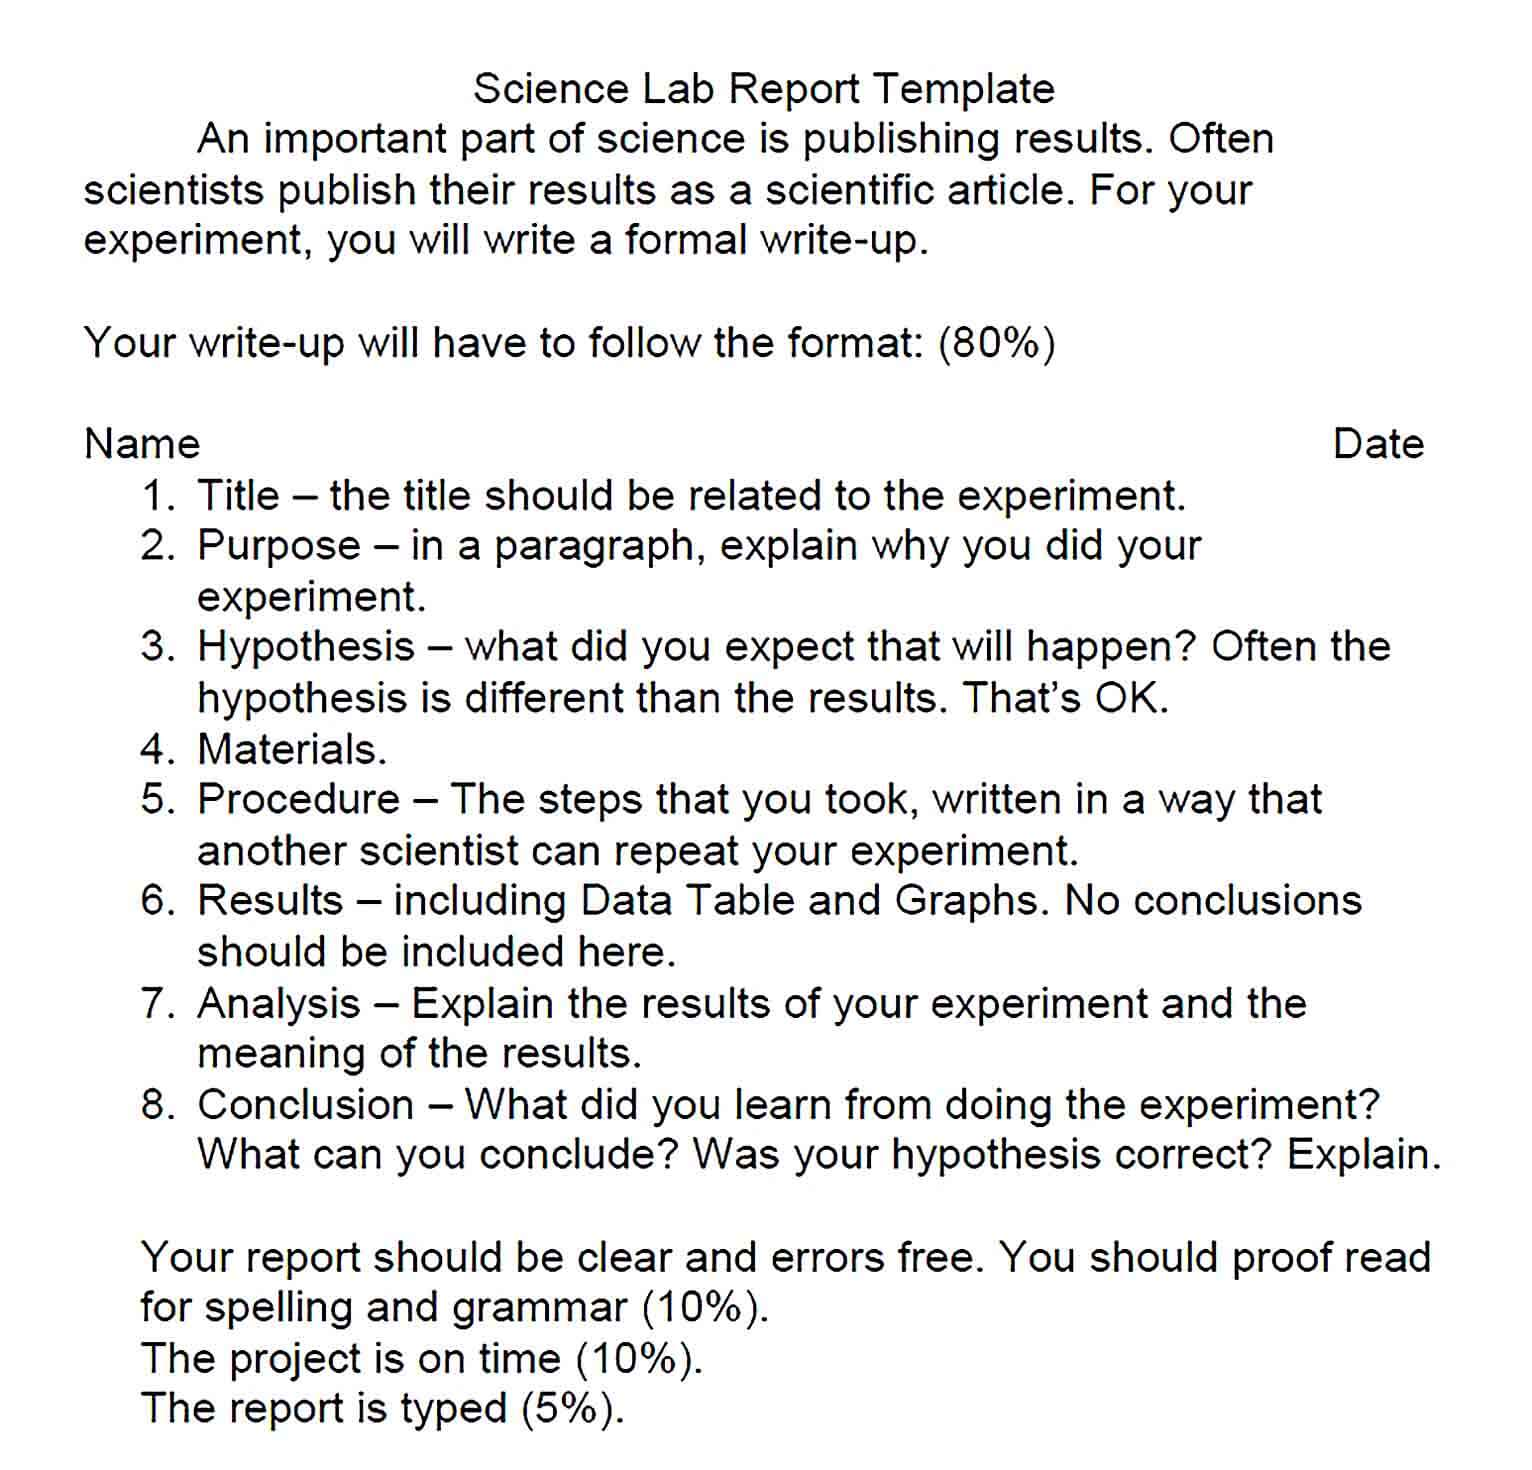 Sample Formal Science Lab Report Template 1